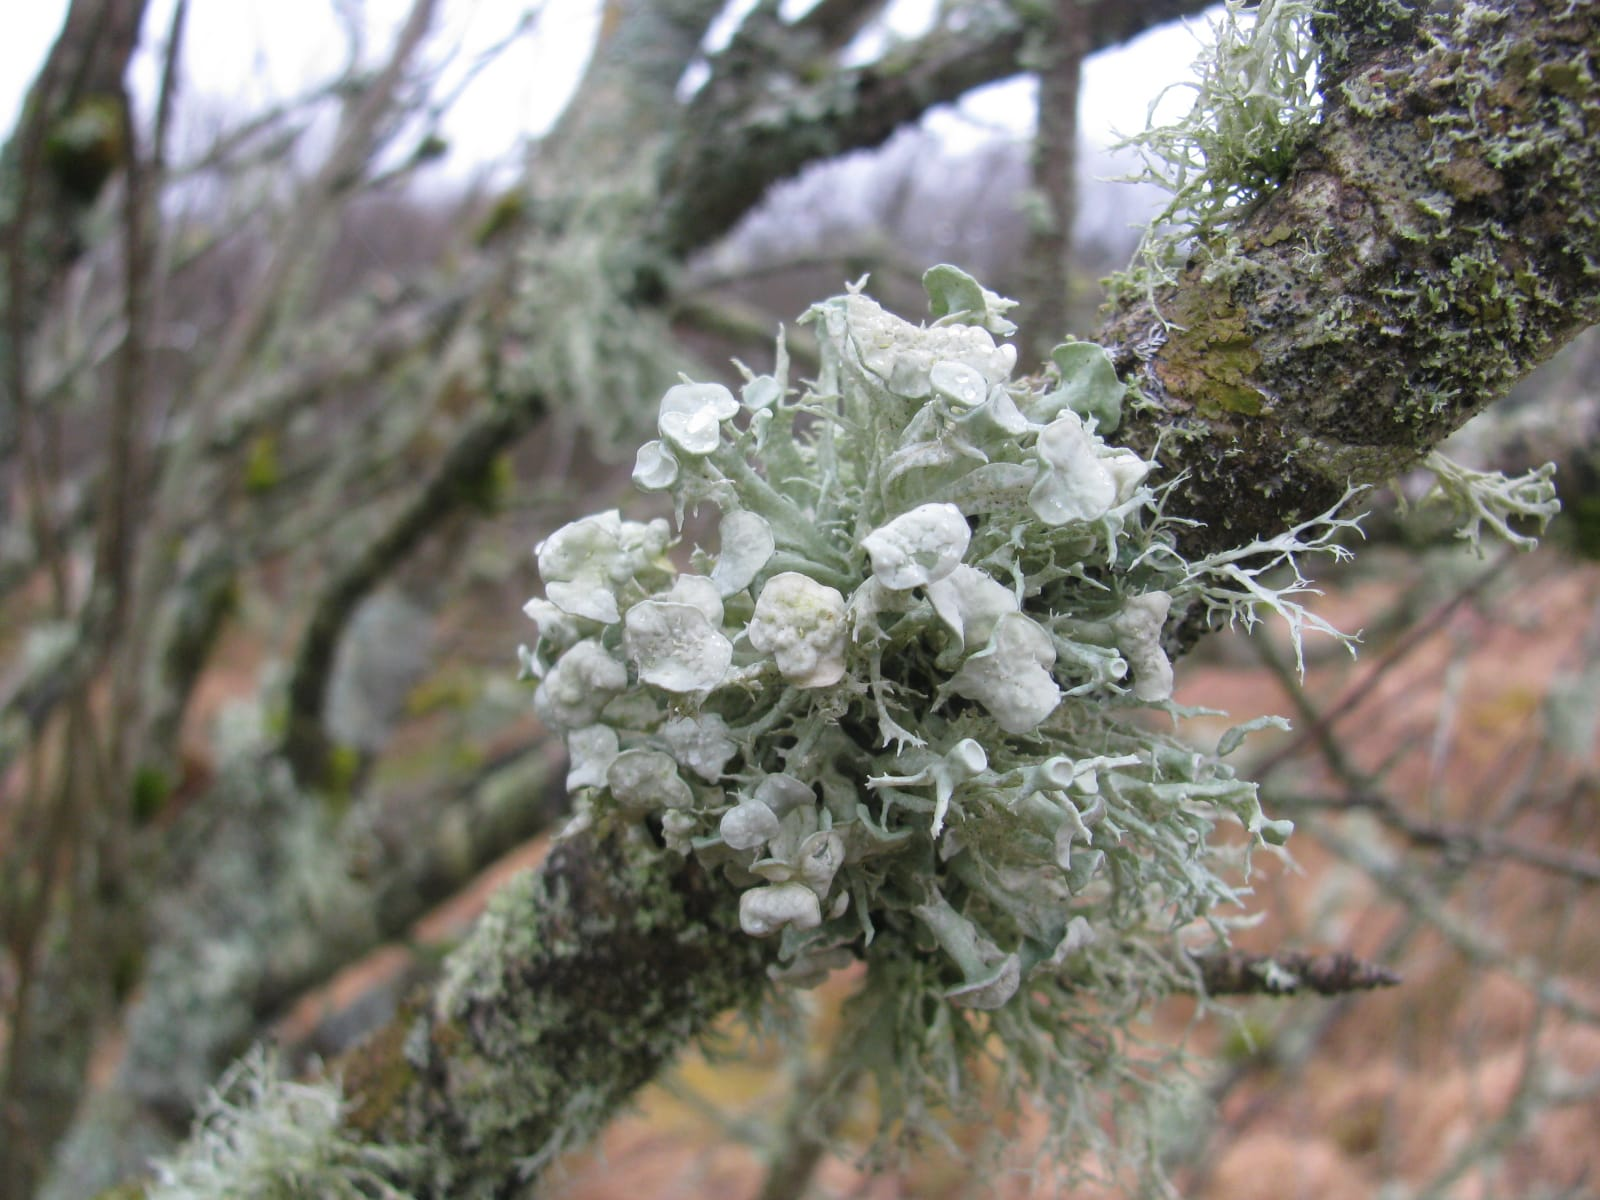 An example of Dotted Ribbon Lichen found in Northumberland National Park